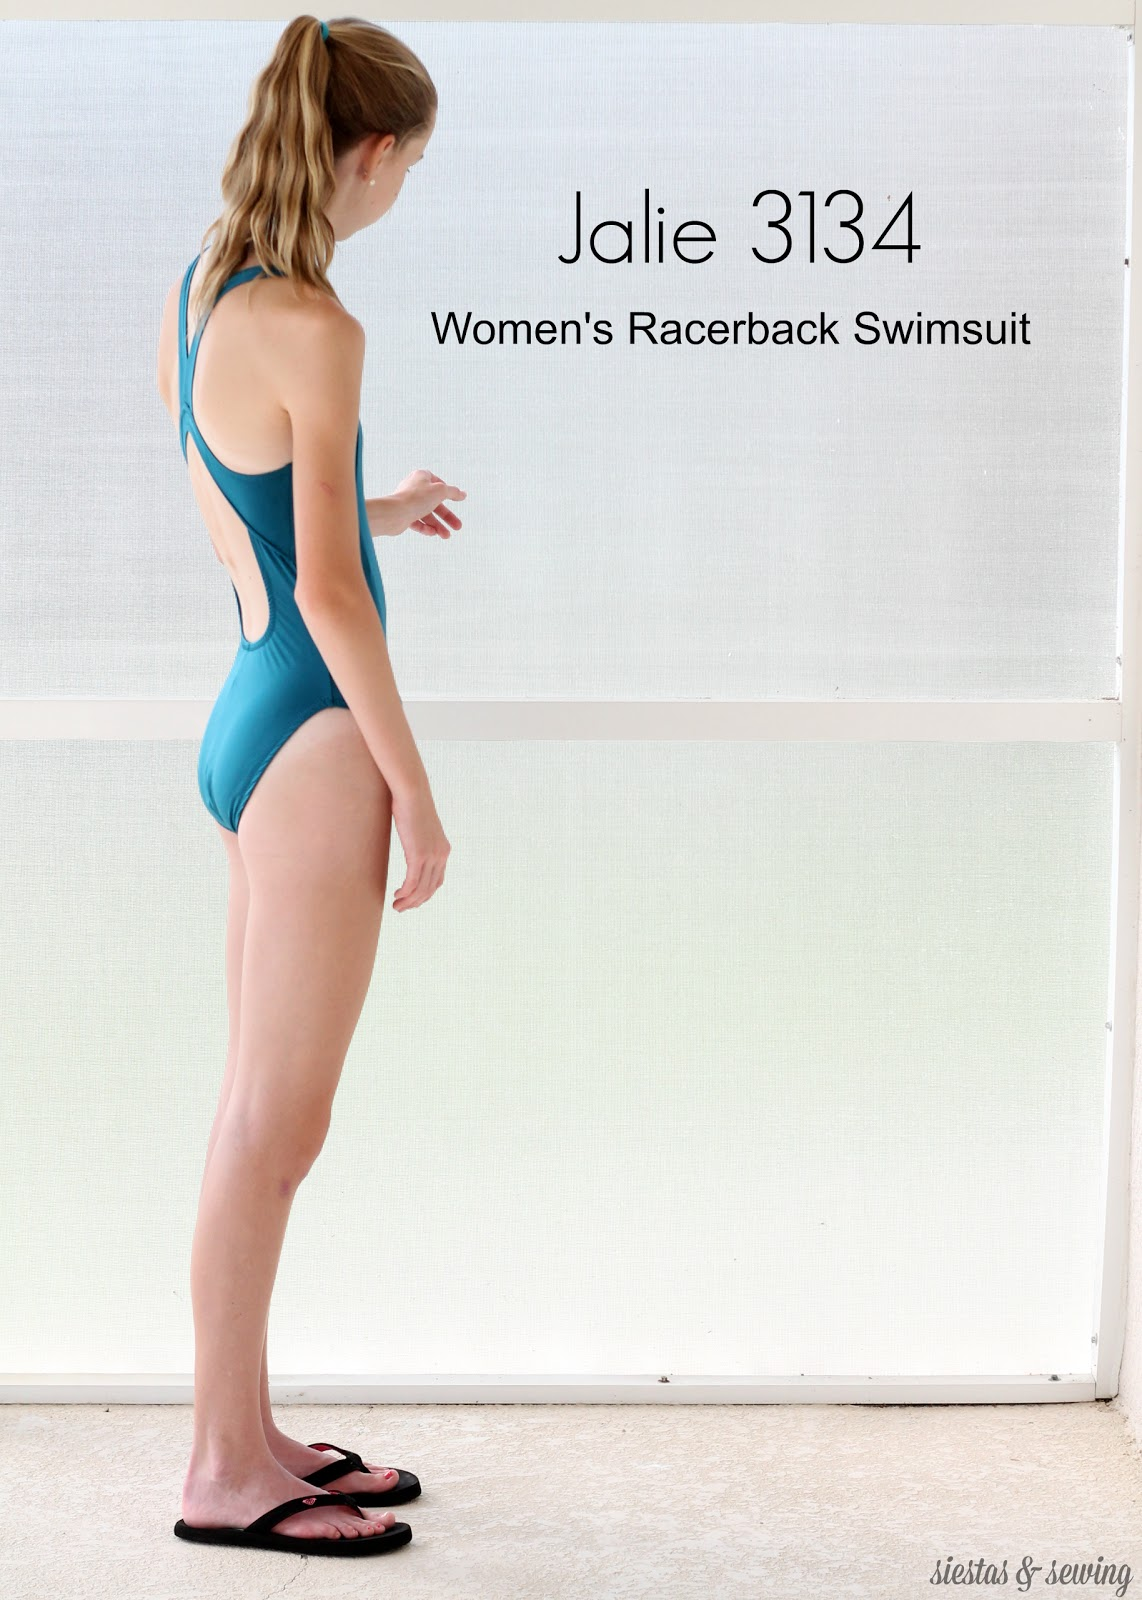 Siestas and sewing swimsuit season my oldest wanted a one piece swimsuit for her lifeguard certification class and around that time shelley made one for her daughter it was a jalie pattern jeuxipadfo Gallery